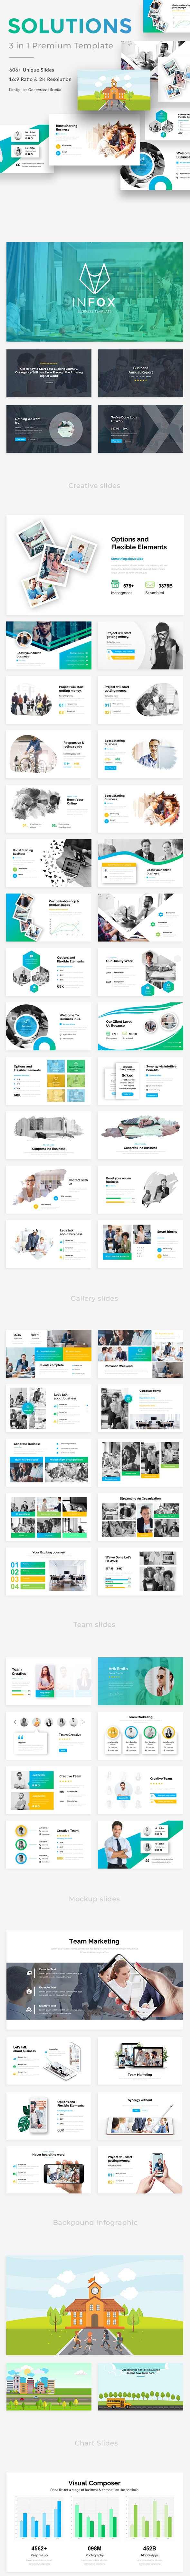 Solutions Plan 3 in 1 Bundle Powerpoint Template - Business PowerPoint Templates